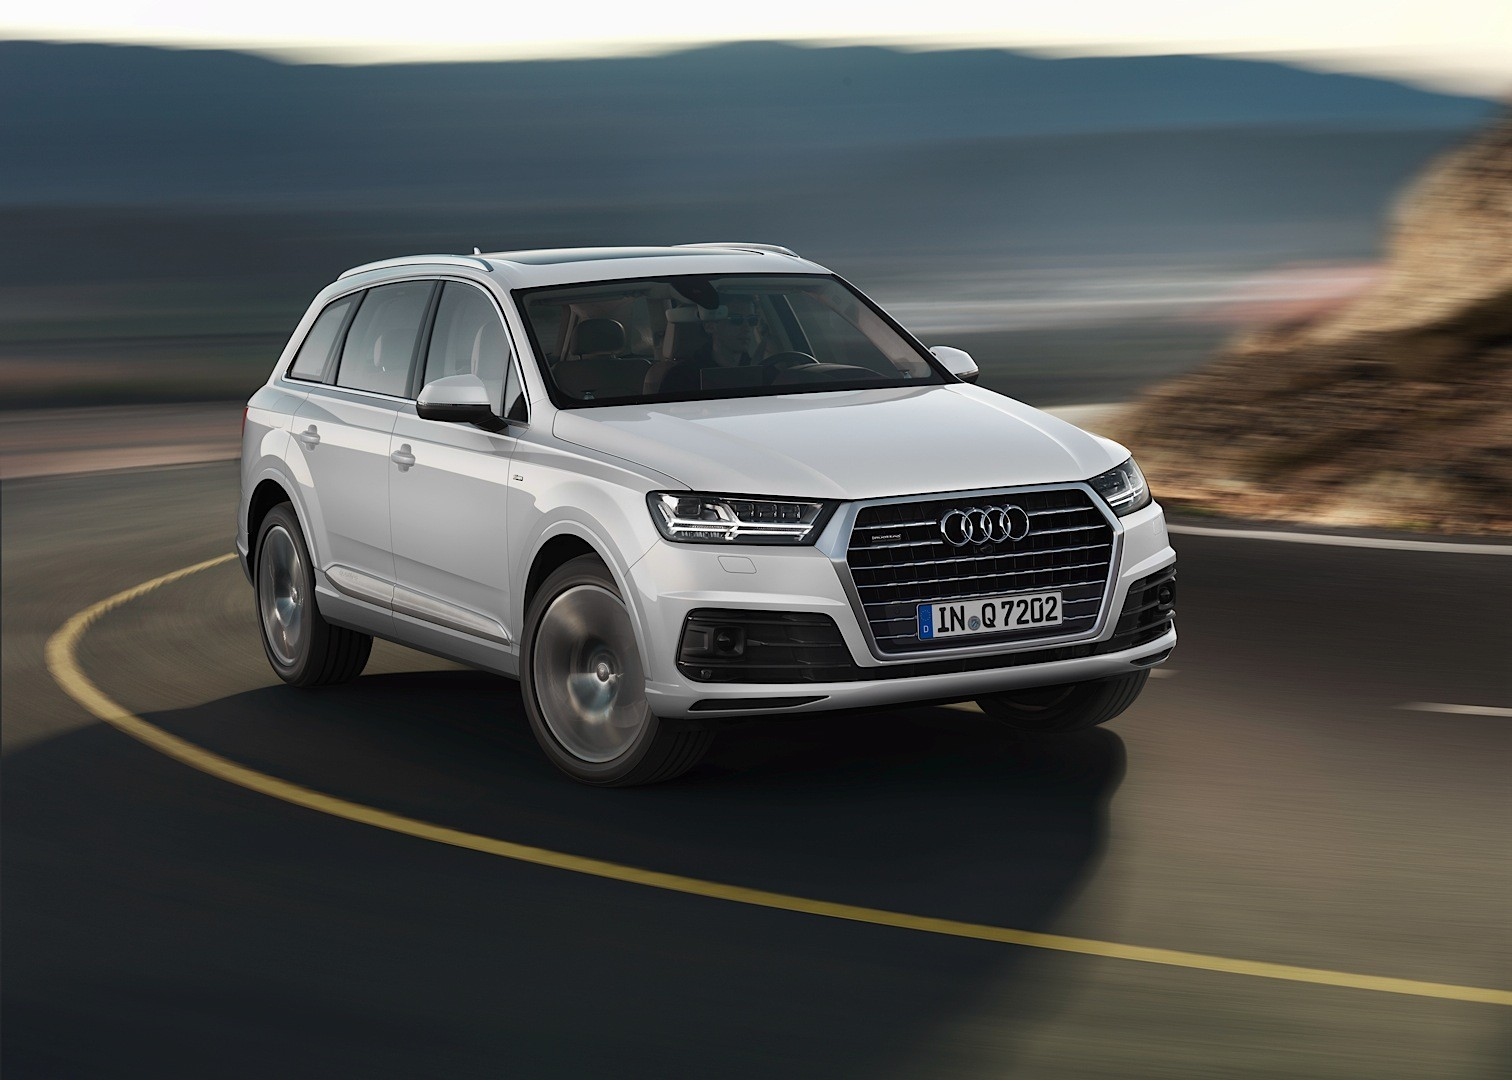 audi shows 2015 q7 in new tofana white color reveals. Black Bedroom Furniture Sets. Home Design Ideas